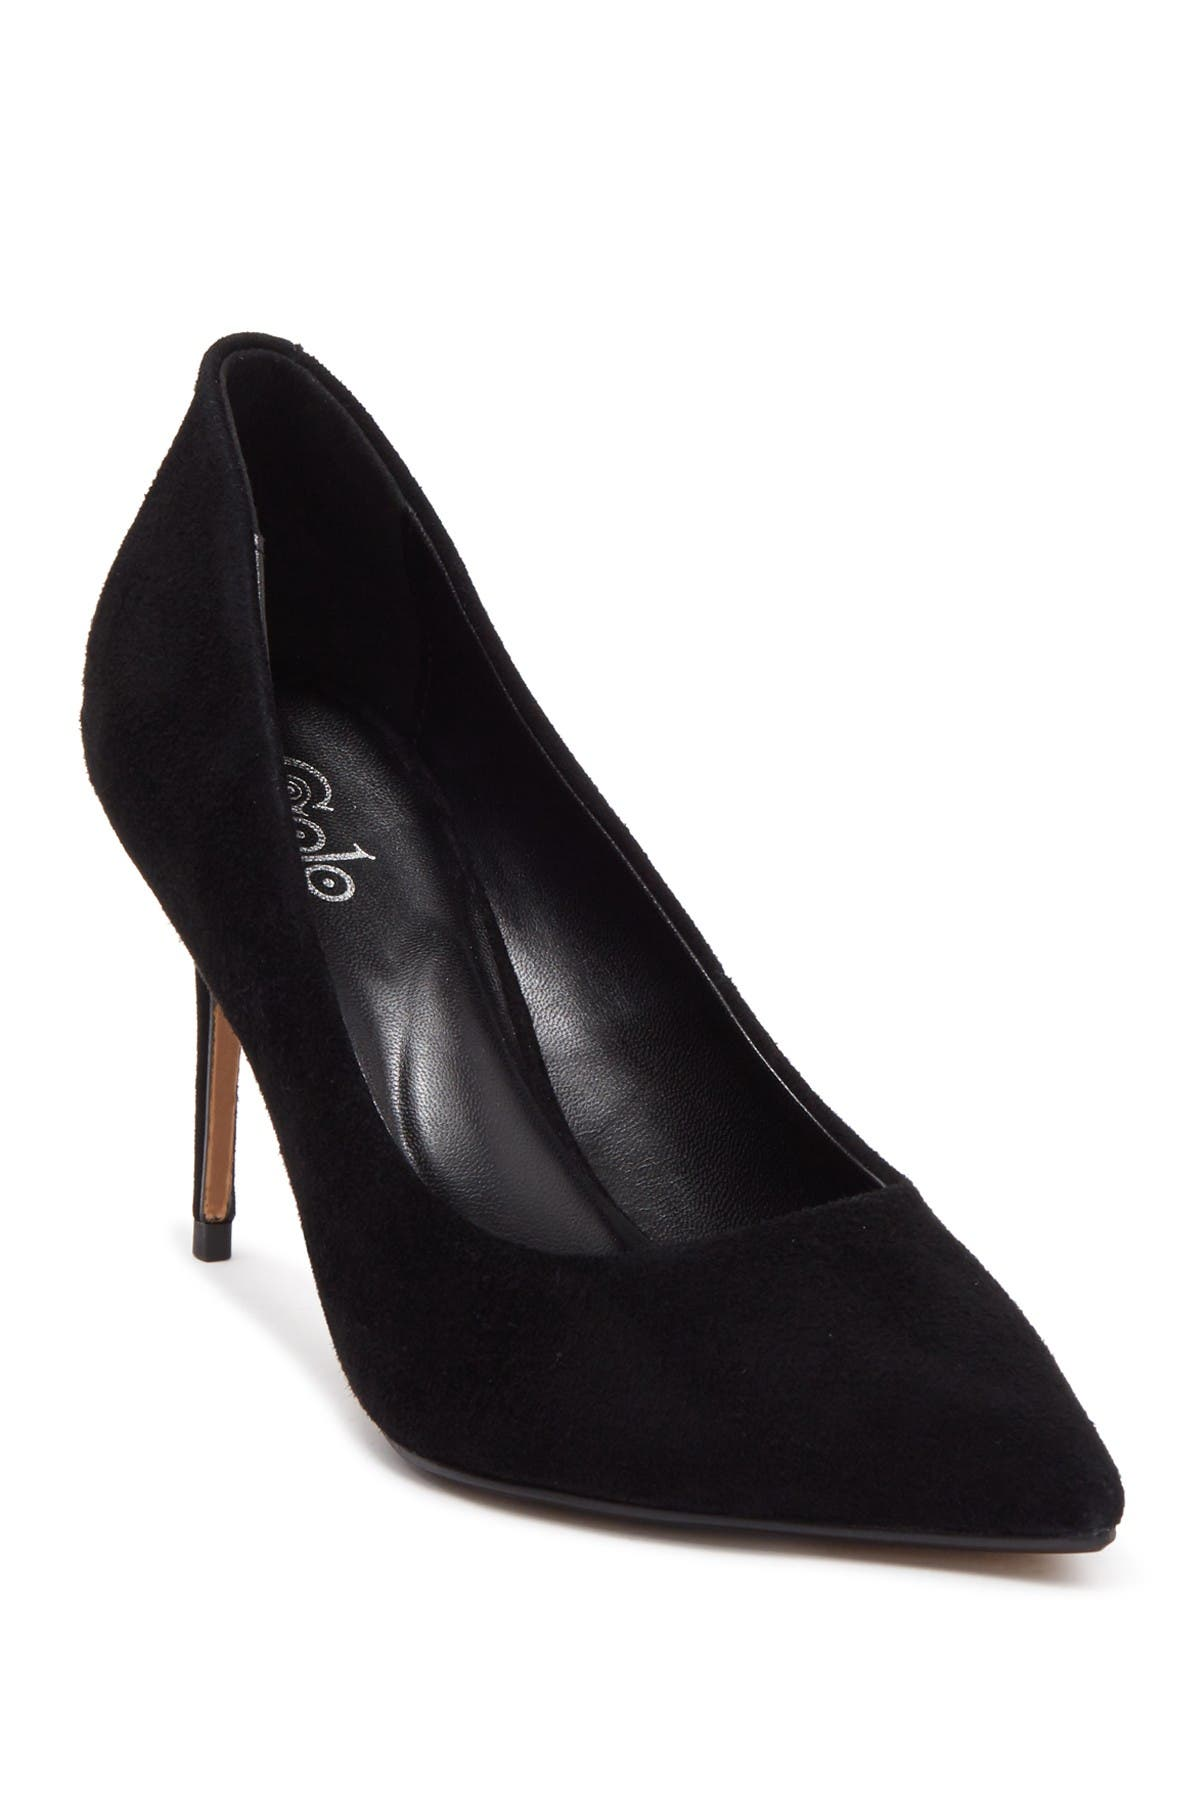 Image of Golo Eva Suede Pointed Toe Pump